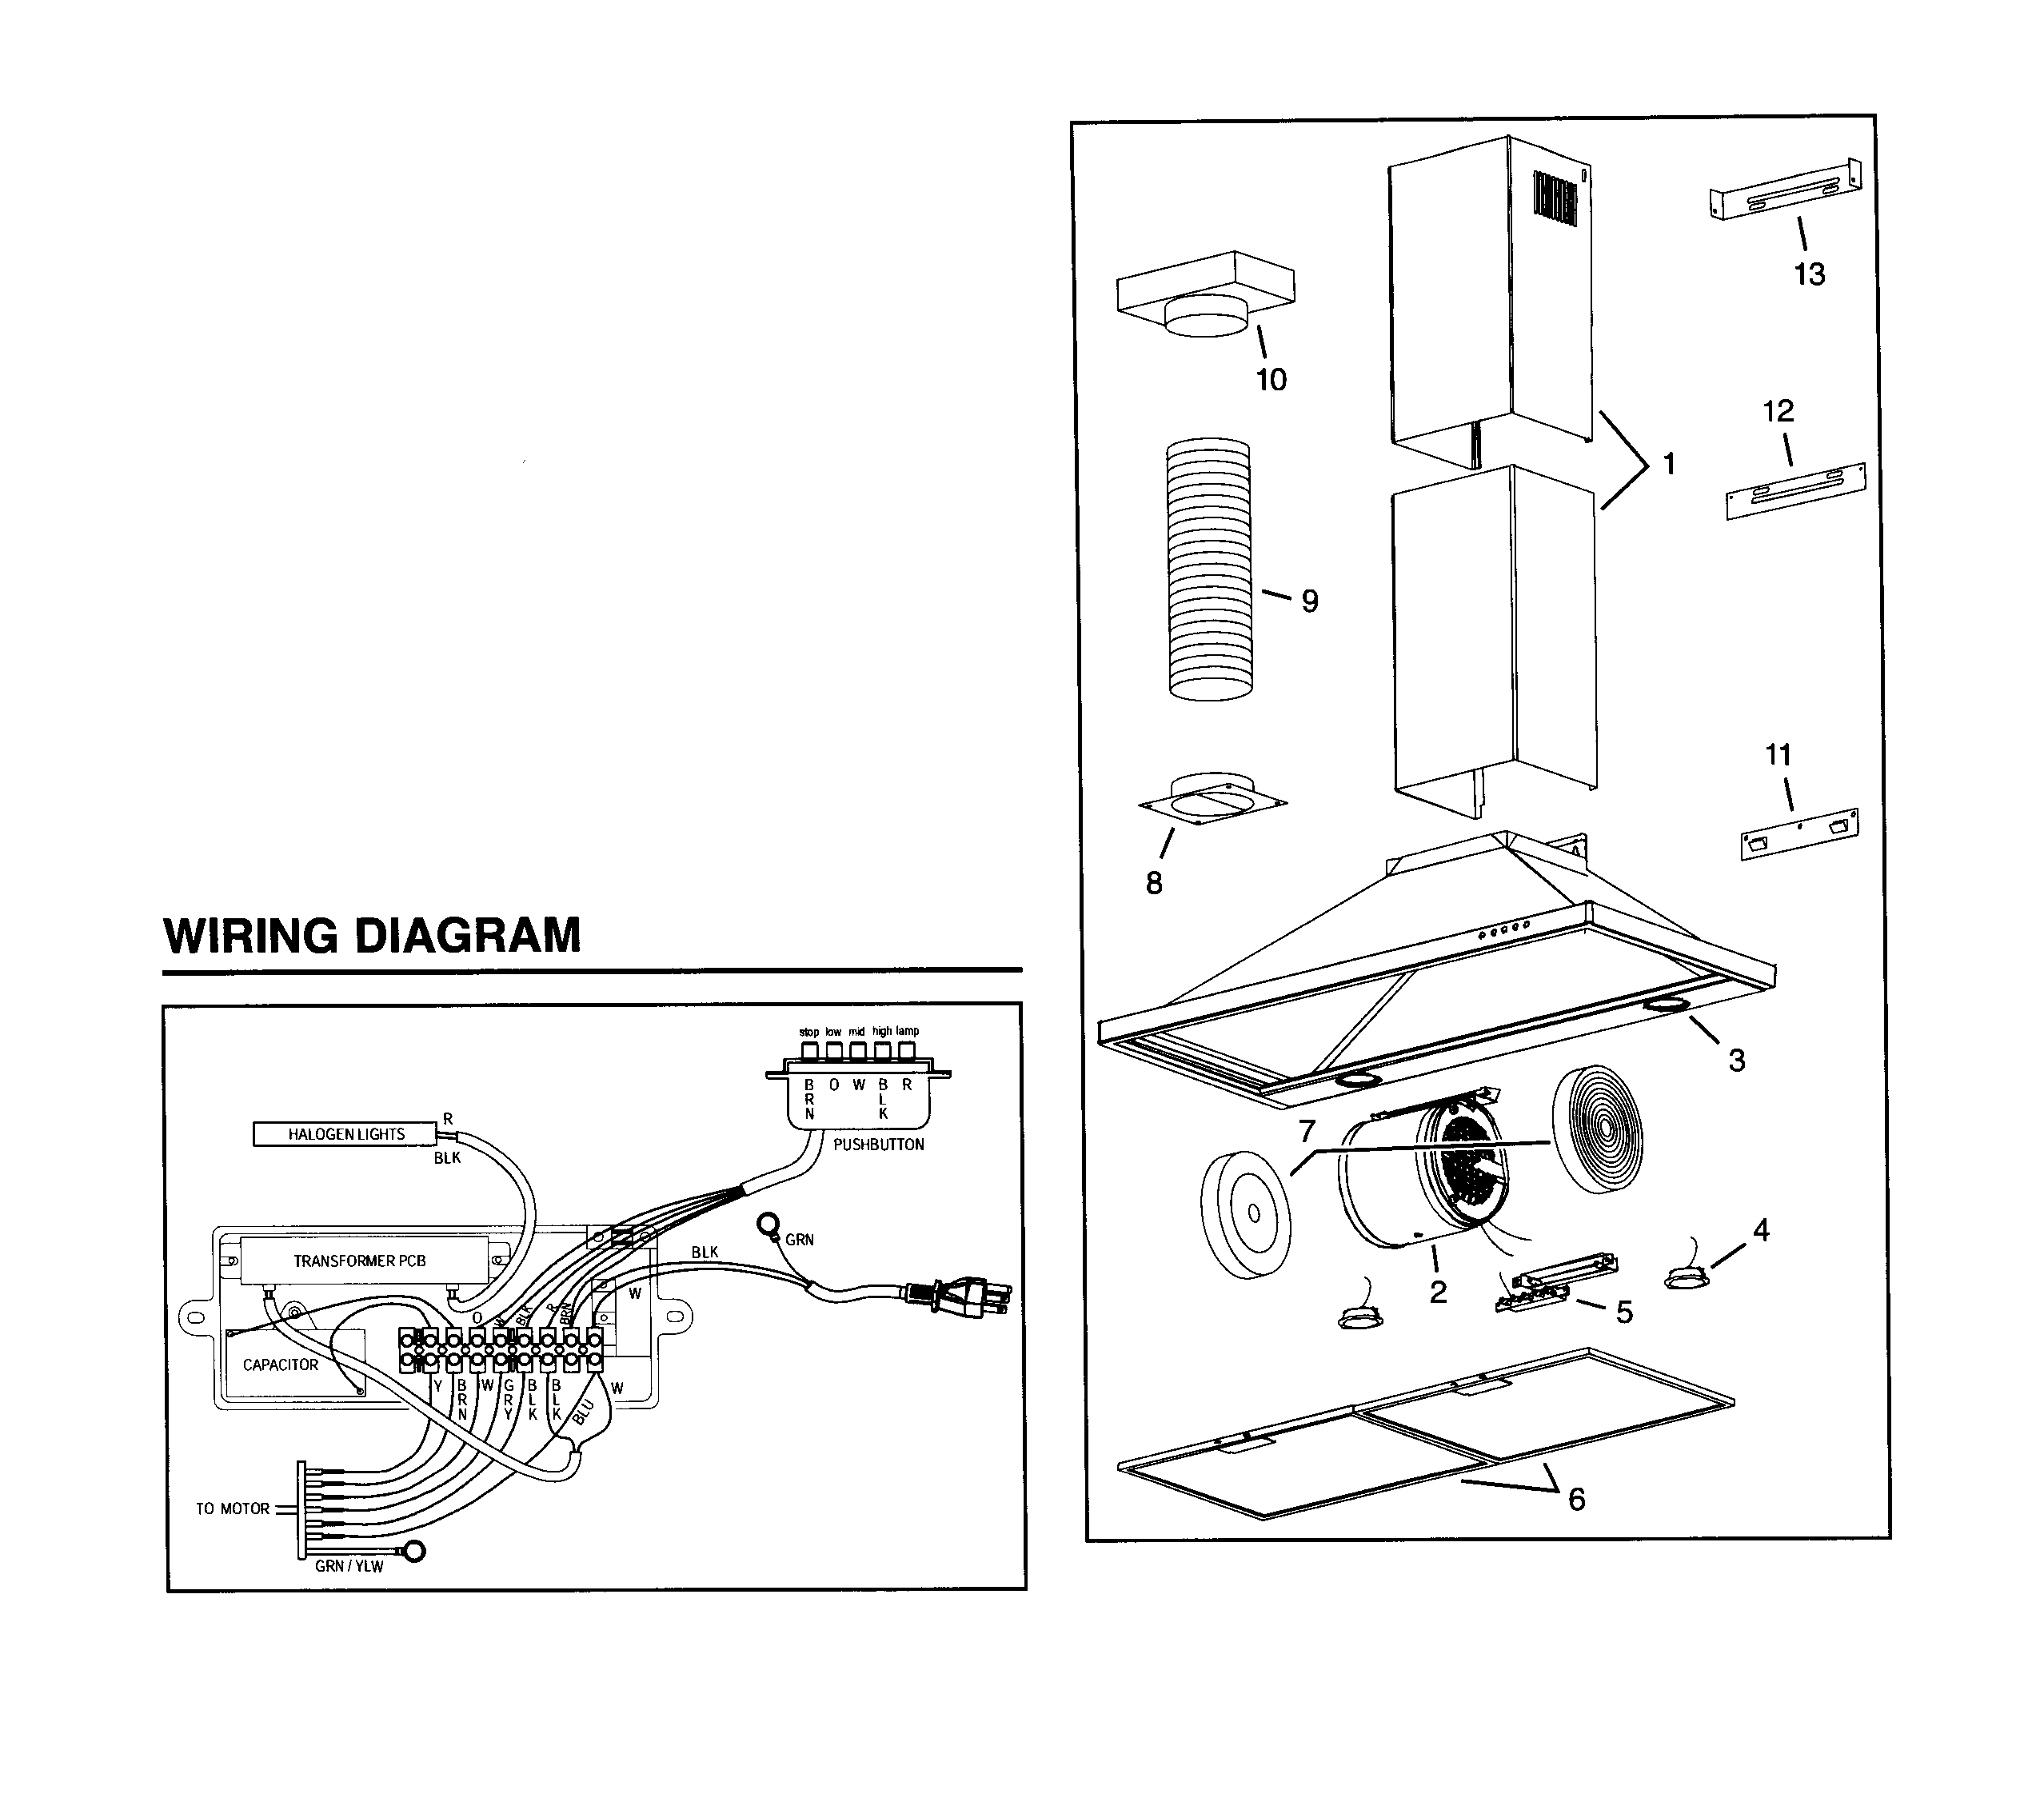 Broan Ventahood Fan Wiring Diagram : 34 Wiring Diagram